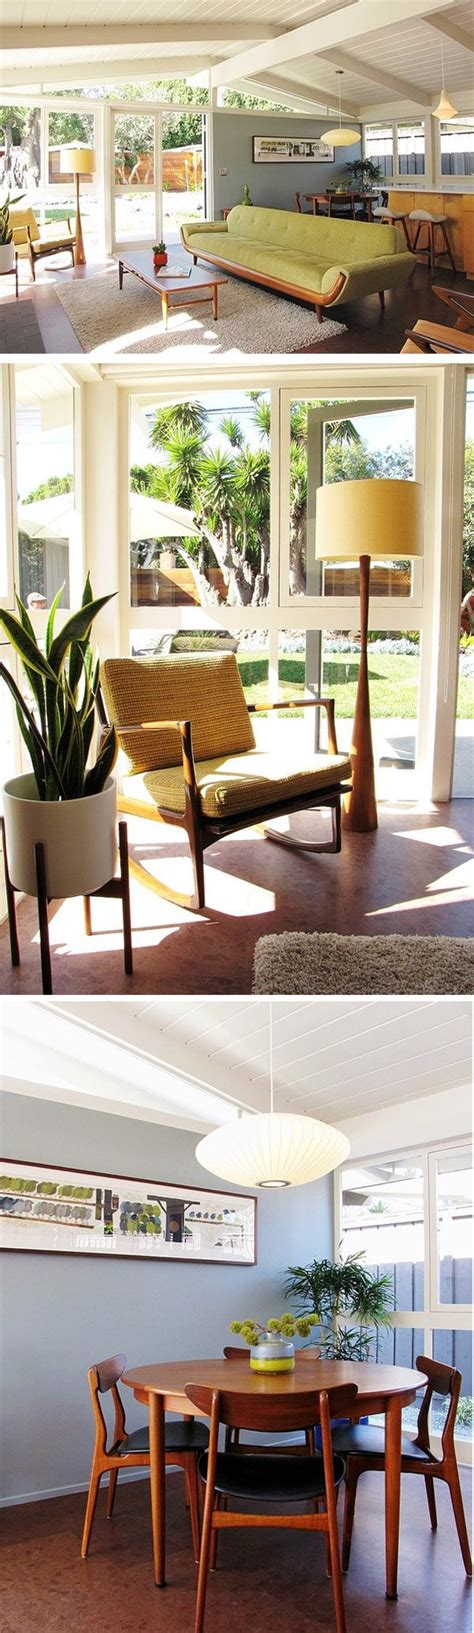 what s my home decor style what s my home decor style mid century modern